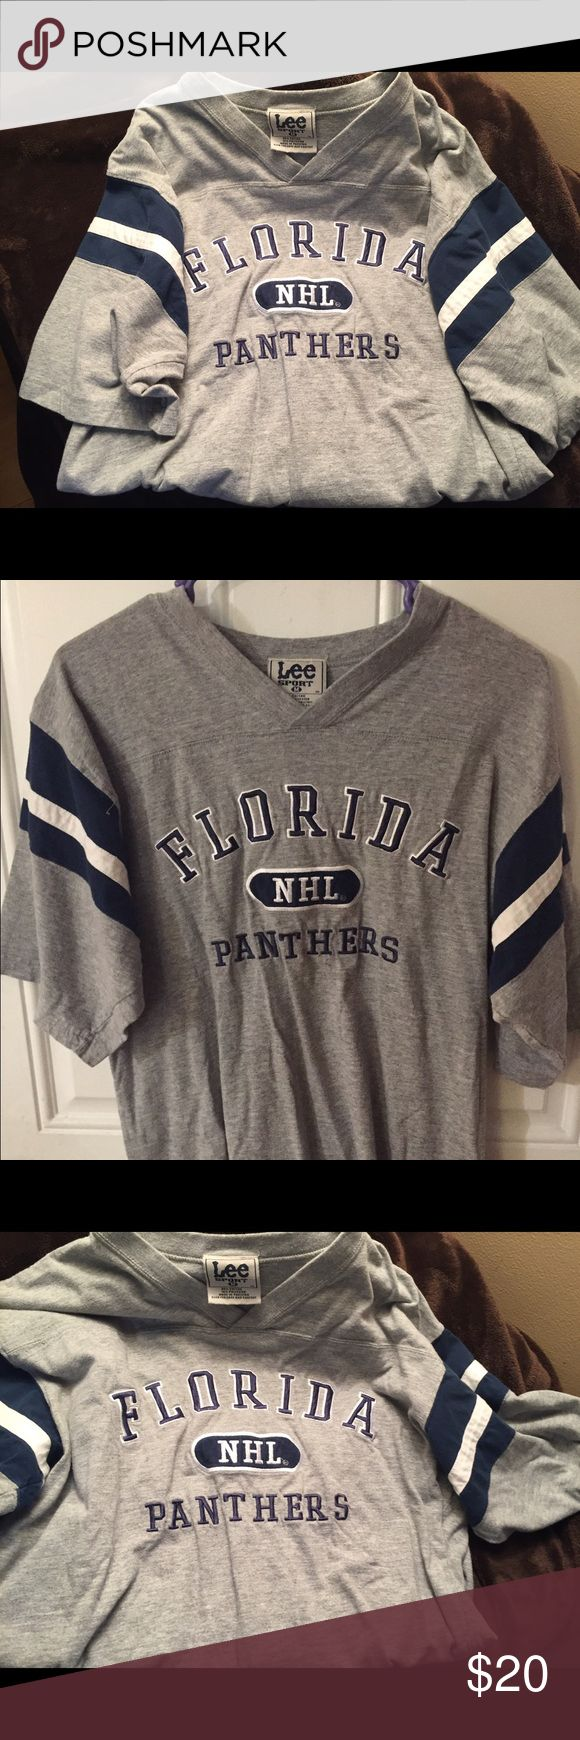 Florida Panthers ladies shirt size medium If you love your Florida Panthers, then this is the shirt for you! A super soft gray jersey Fla Panthers shirt for the ladies! I wore it when I was pregnant with my daughter 16 years ago so it's definitely a classic! It was only worn a handful of times and is in very good condition. Very little pilling. Lee Tops Tees - Short Sleeve